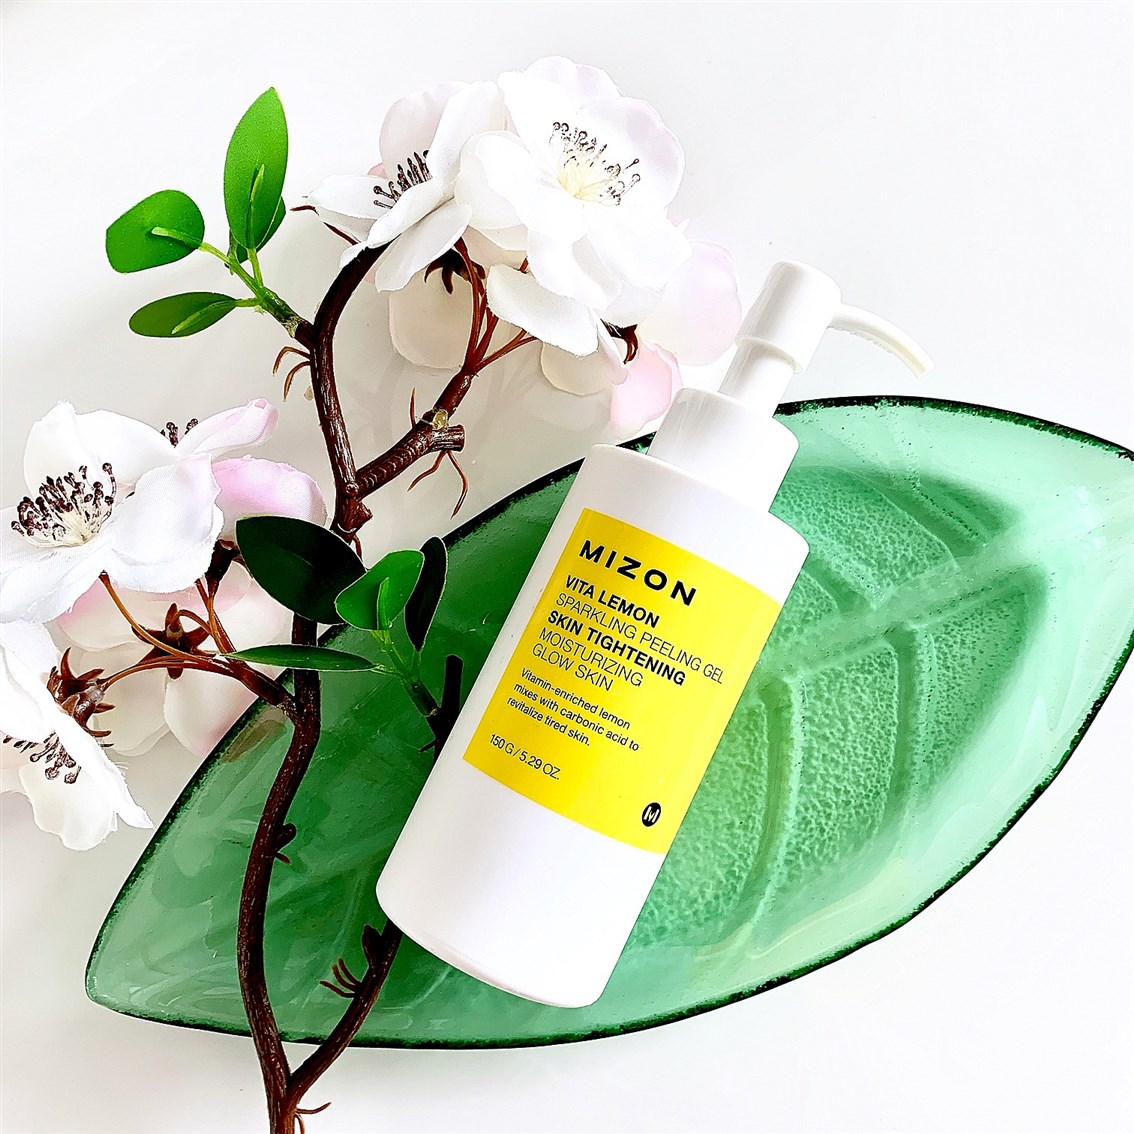 Mizon Vita Lemon Sparkling Peeling Gel opinie blog